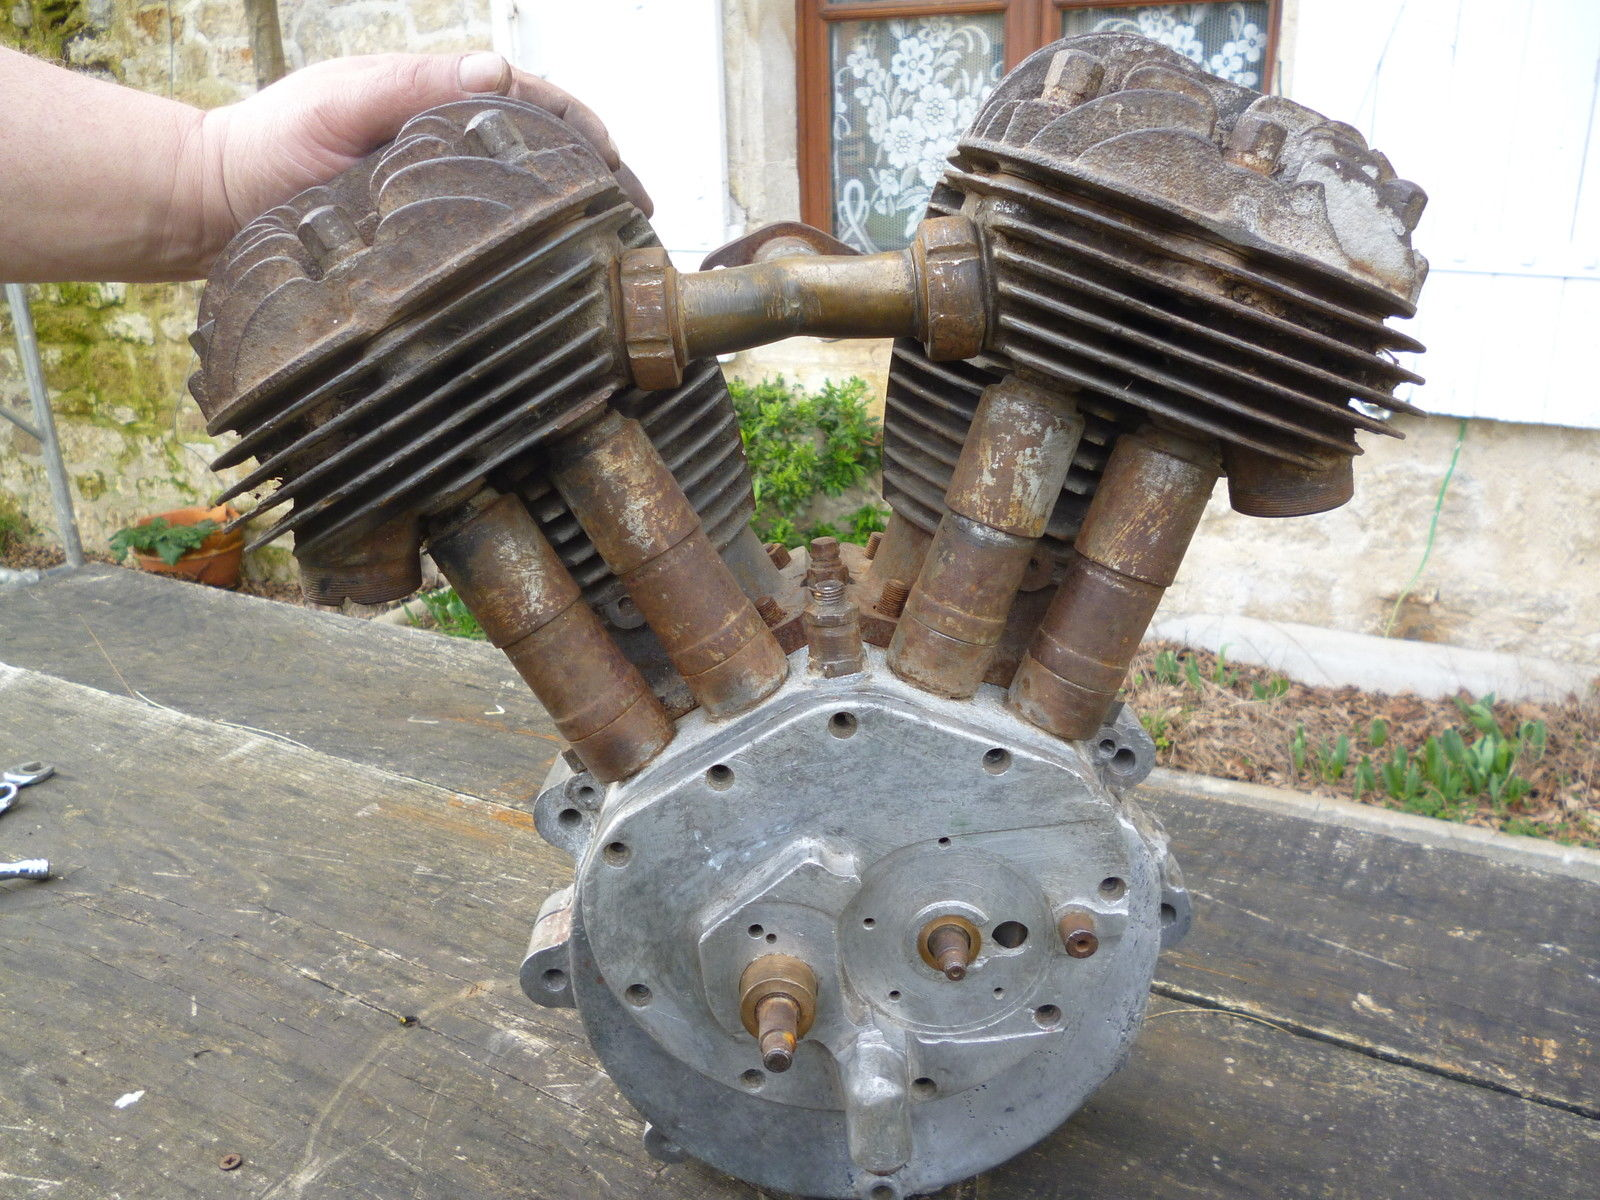 BSA G14 Engine, 1000cc V-twin, 1930s, J12, Y13. Vintage.